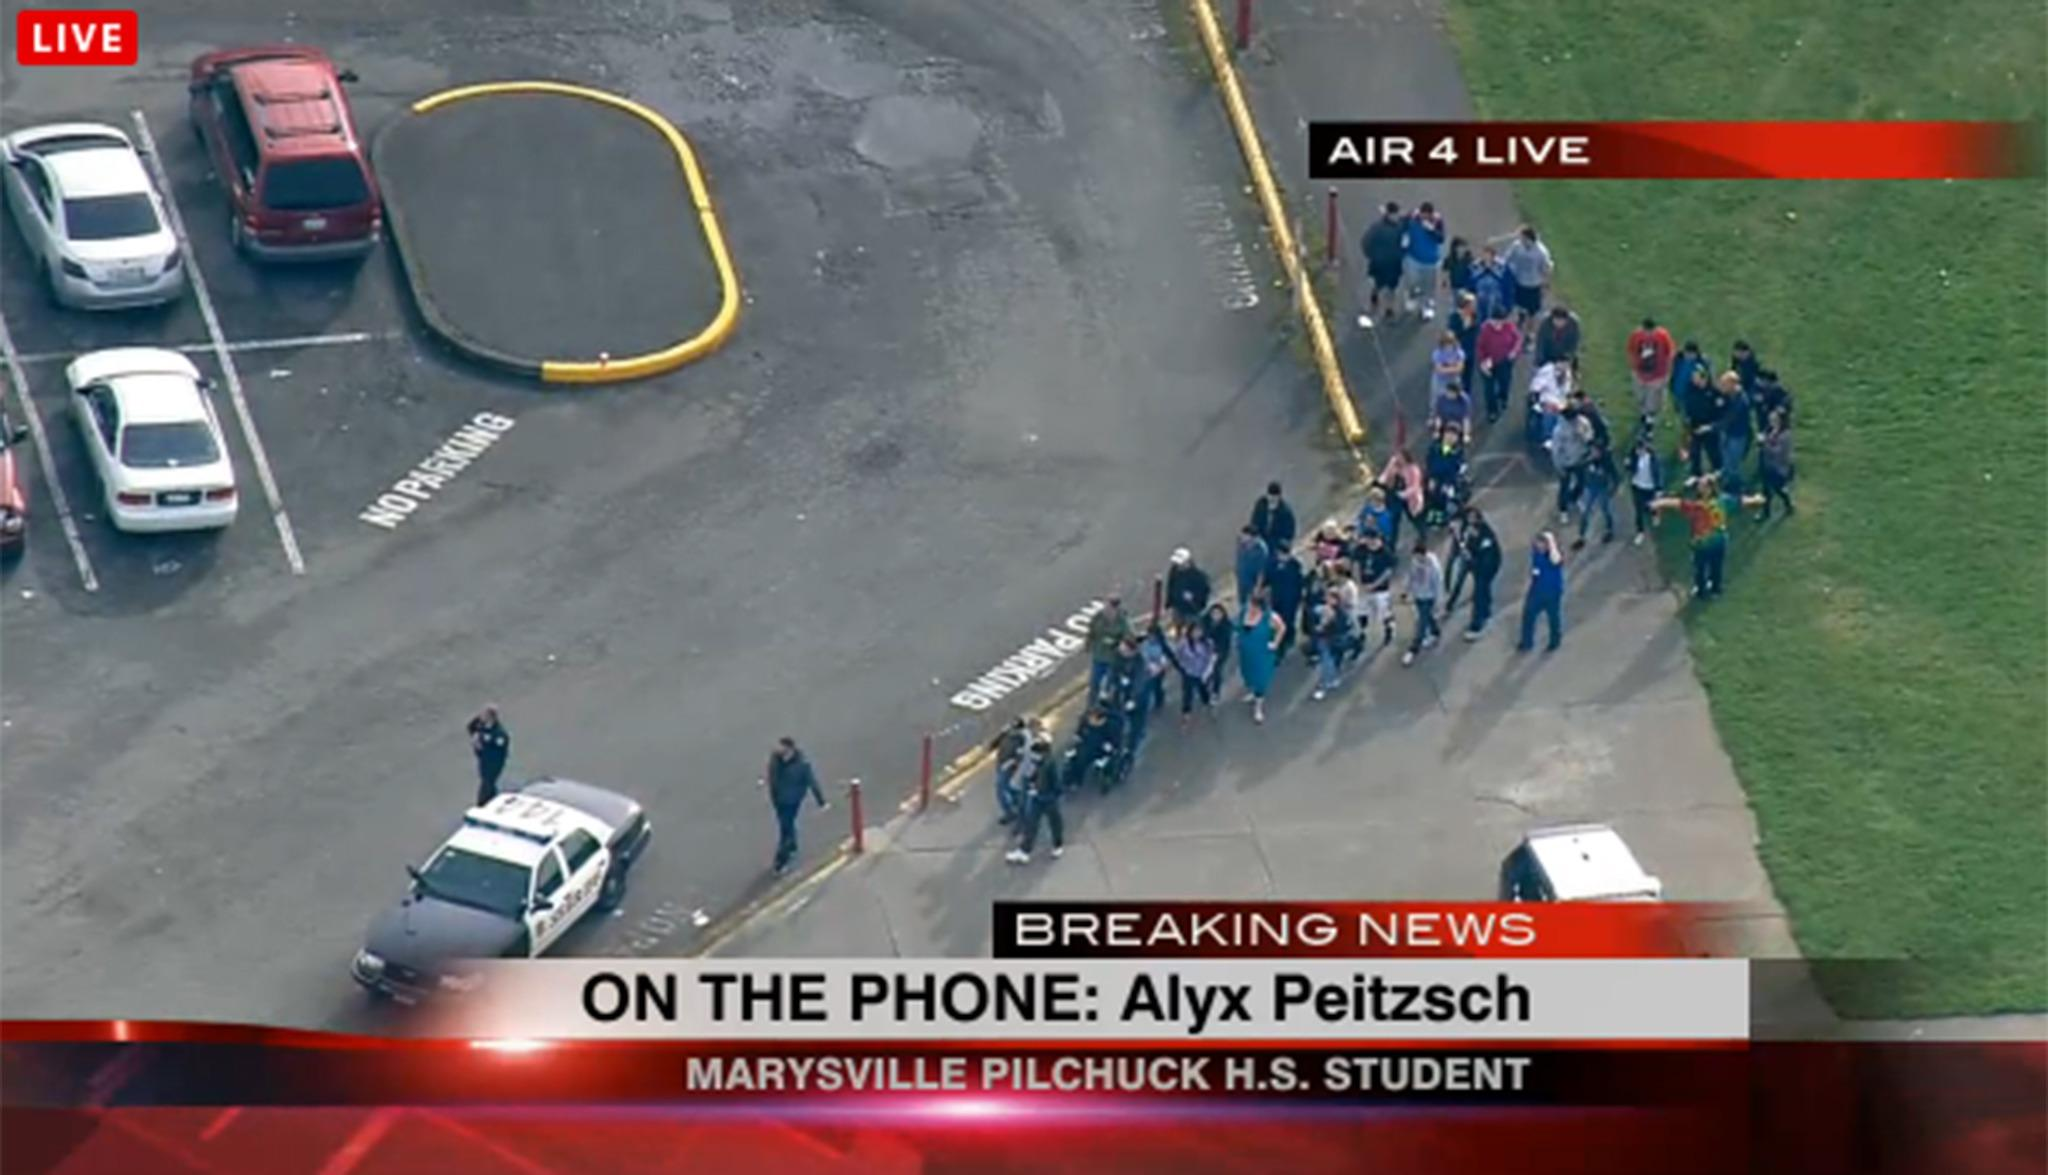 RT @Independent: Two dead including a gunman in Seattle school shooting at Marysville-Pilchuck High School http://t.co/4cNMYPHcVs http://t.…